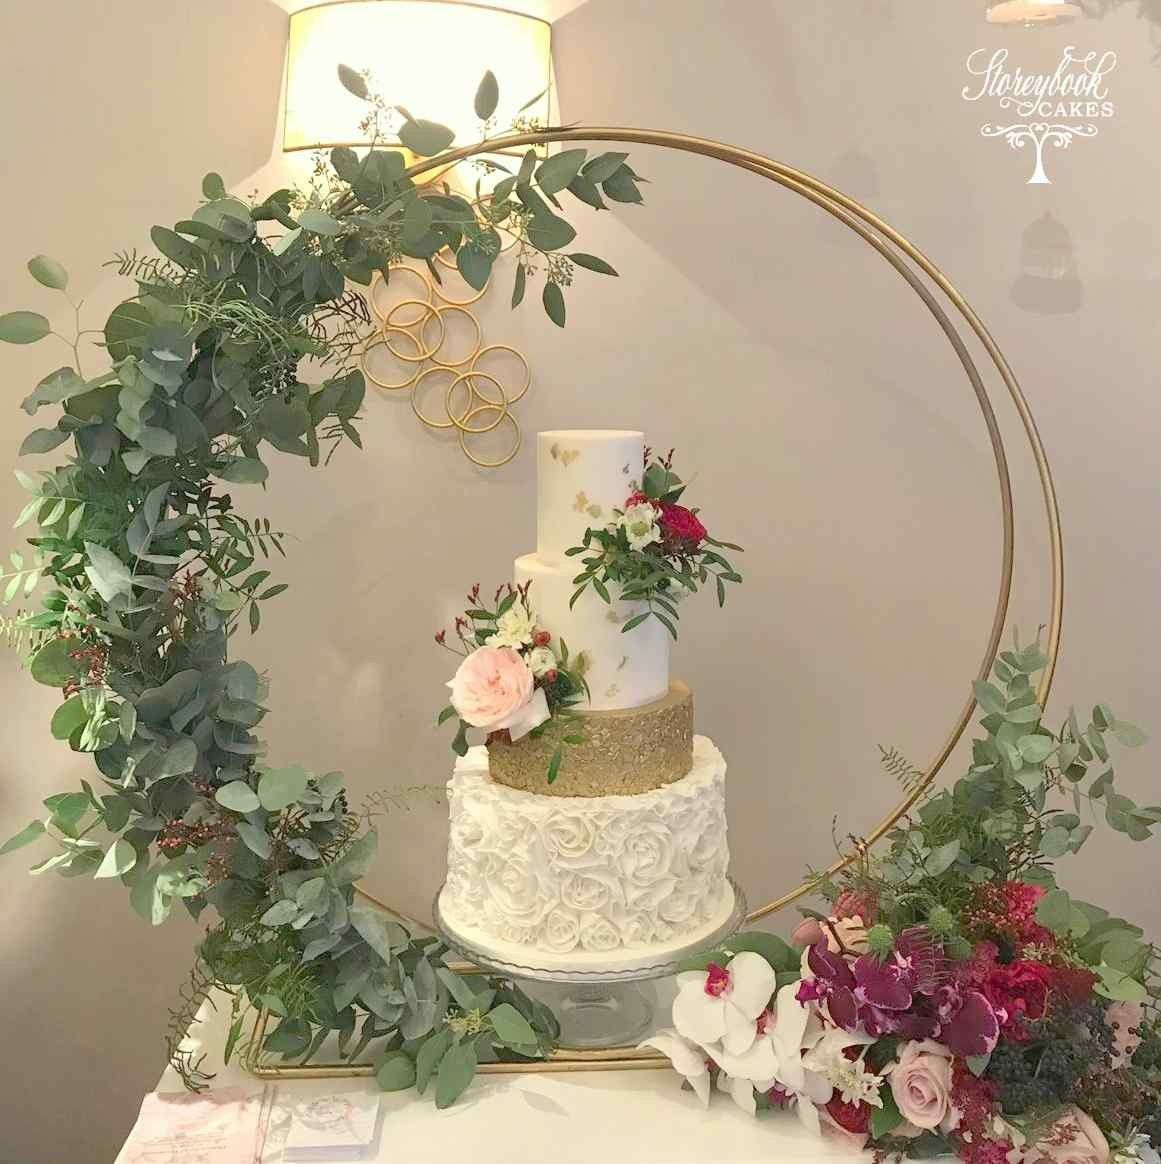 Wedding Cakes Wedding Cake Fresh: Wedding Cake Hoop, Wedding Cake Stand Inspiration, Floral